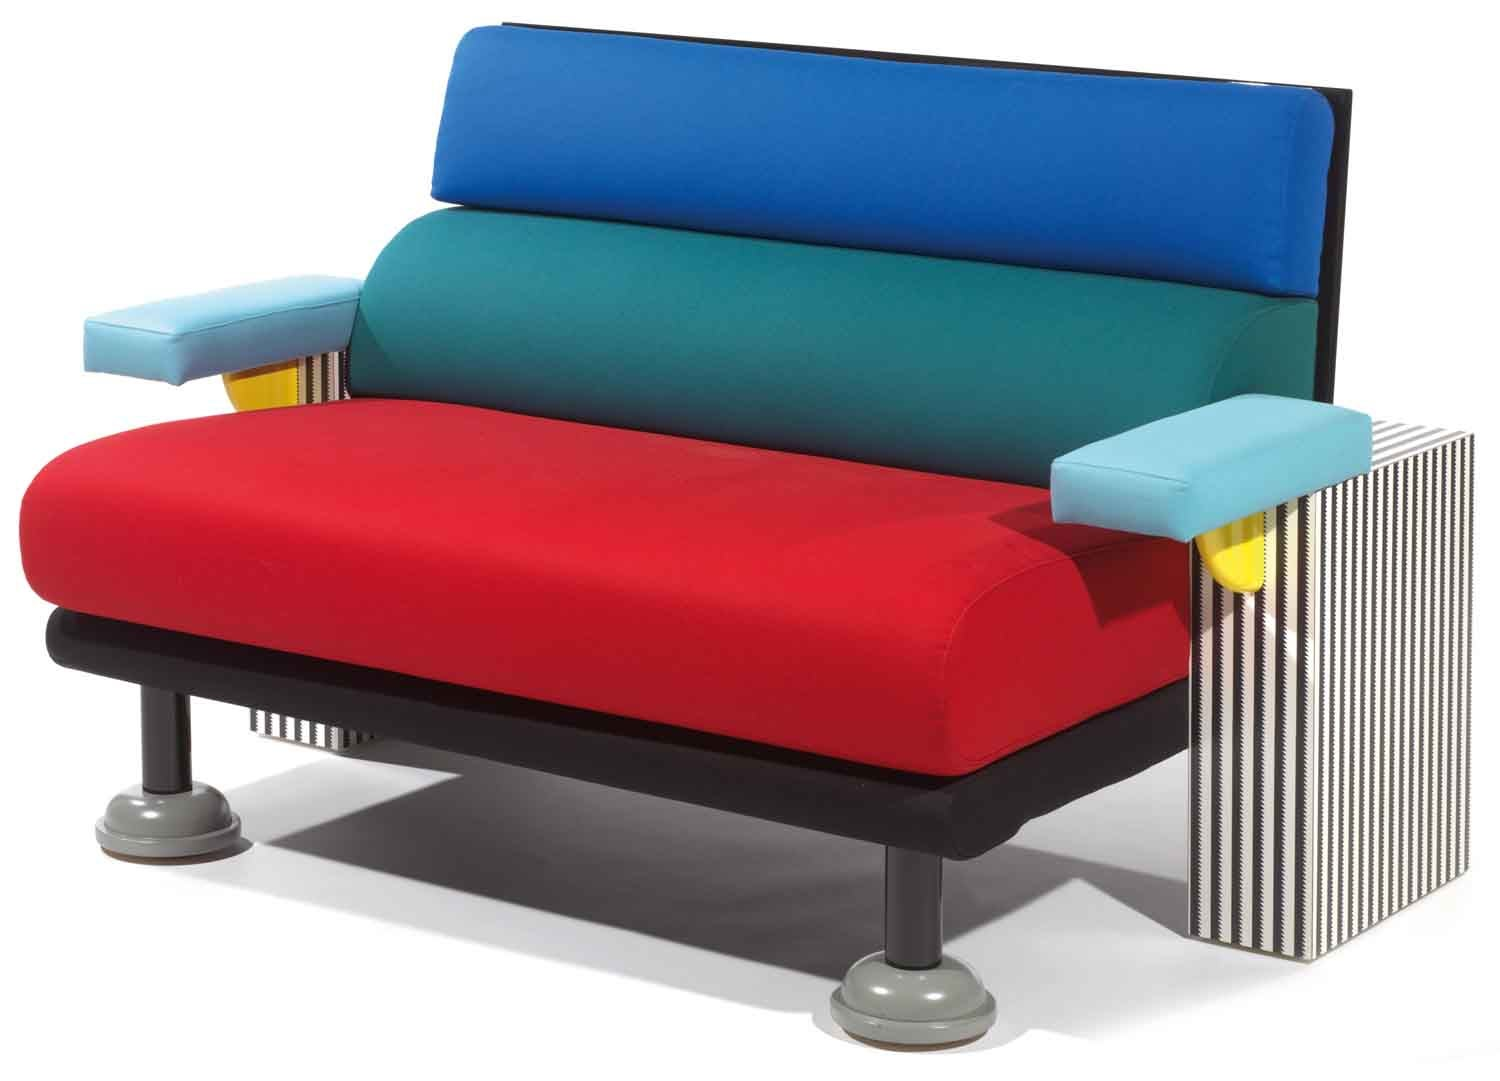 Why a once hated 1980s design movement is making a for 1980s chair design